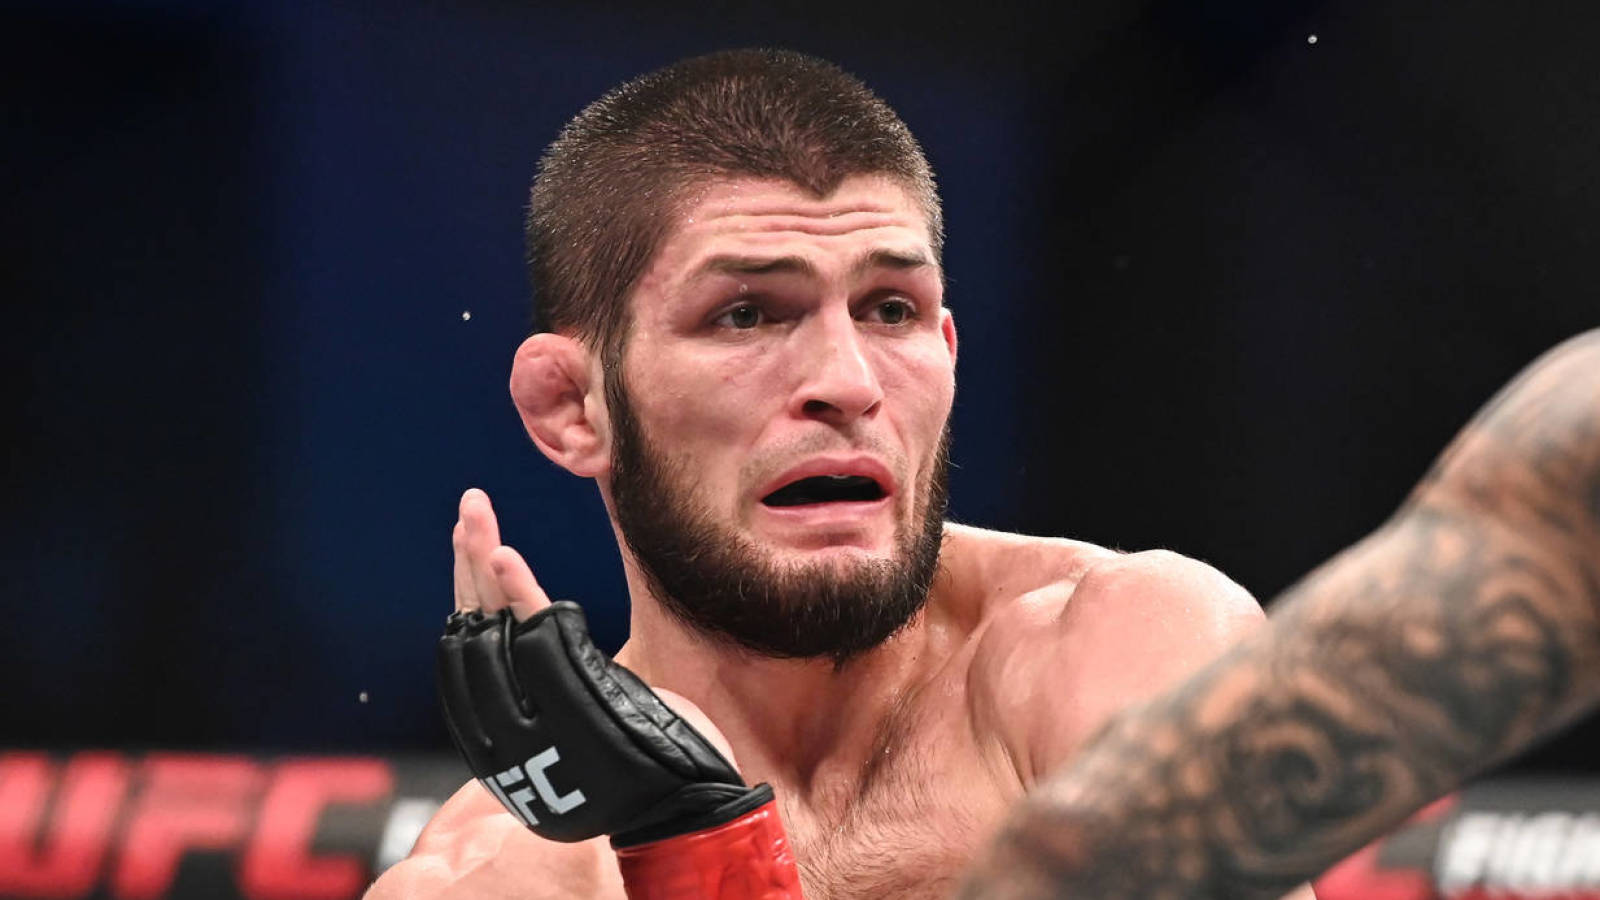 Father of UFC's Khabib Nurmagomedov dies from coronavirus complications